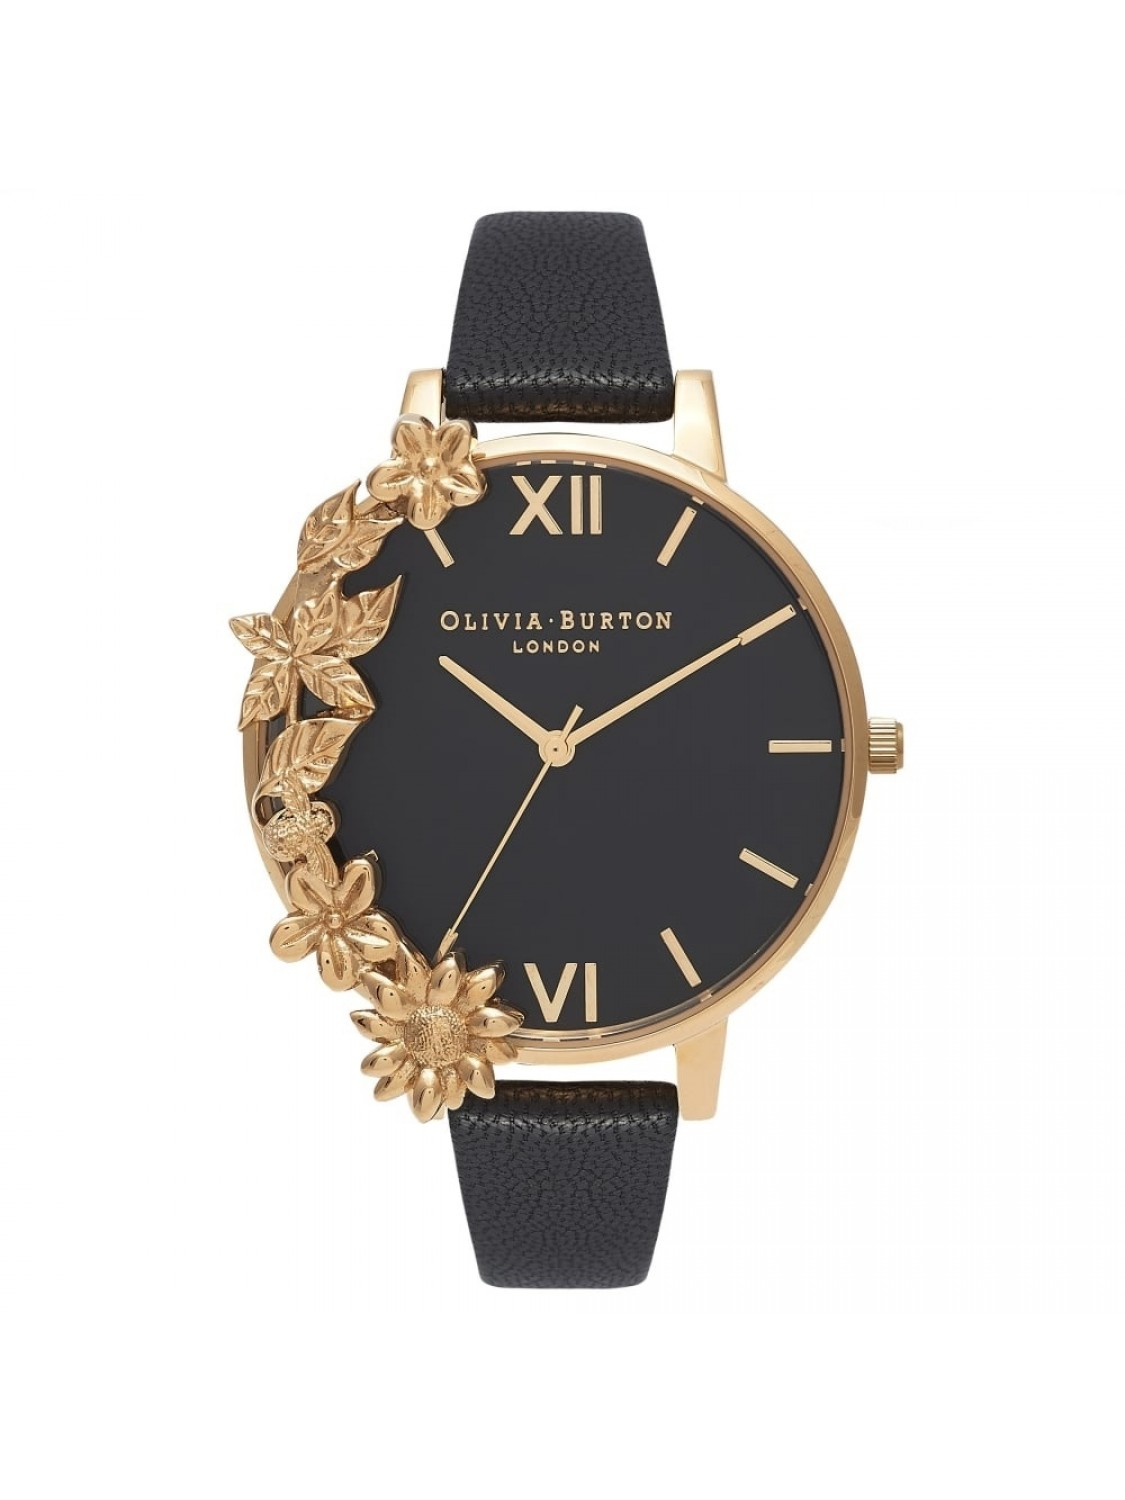 Olivia Burton Case Cuff Black Dial and Gold-31